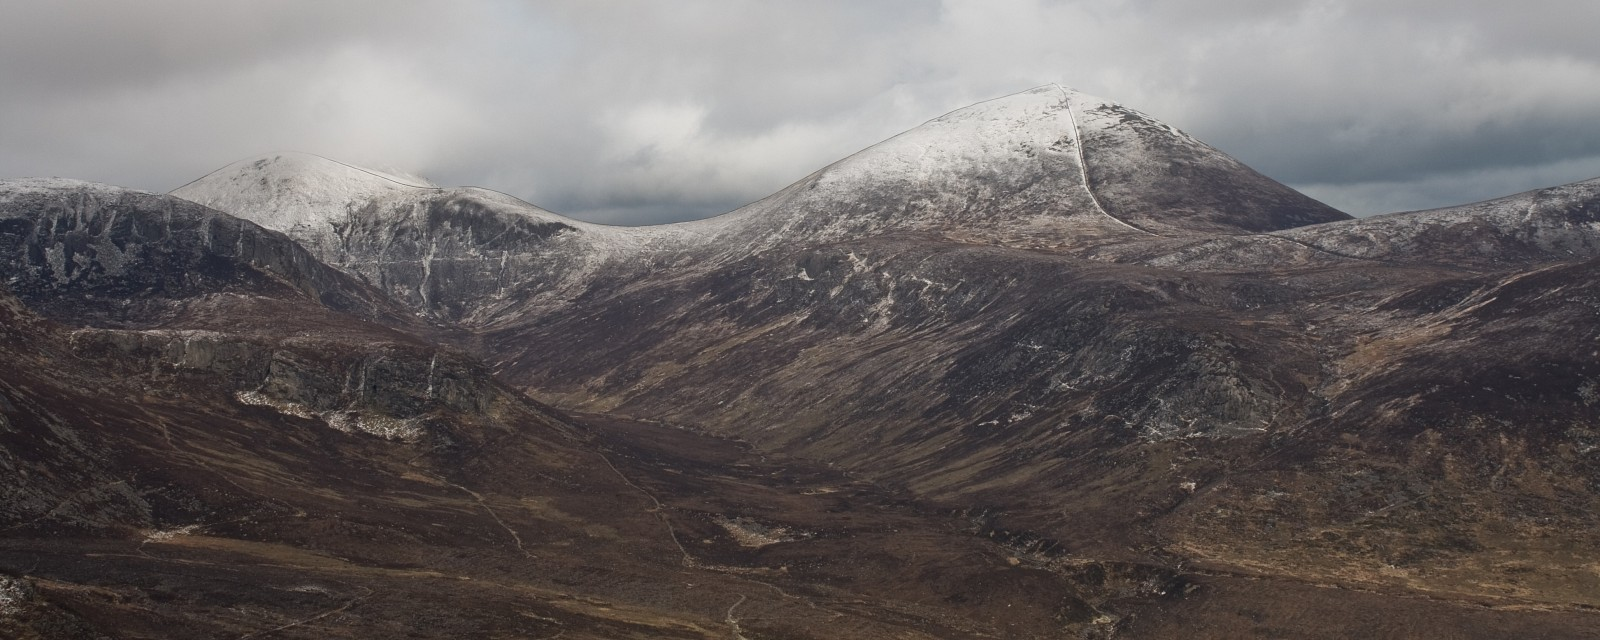 The Mournes - Mourne Mountains